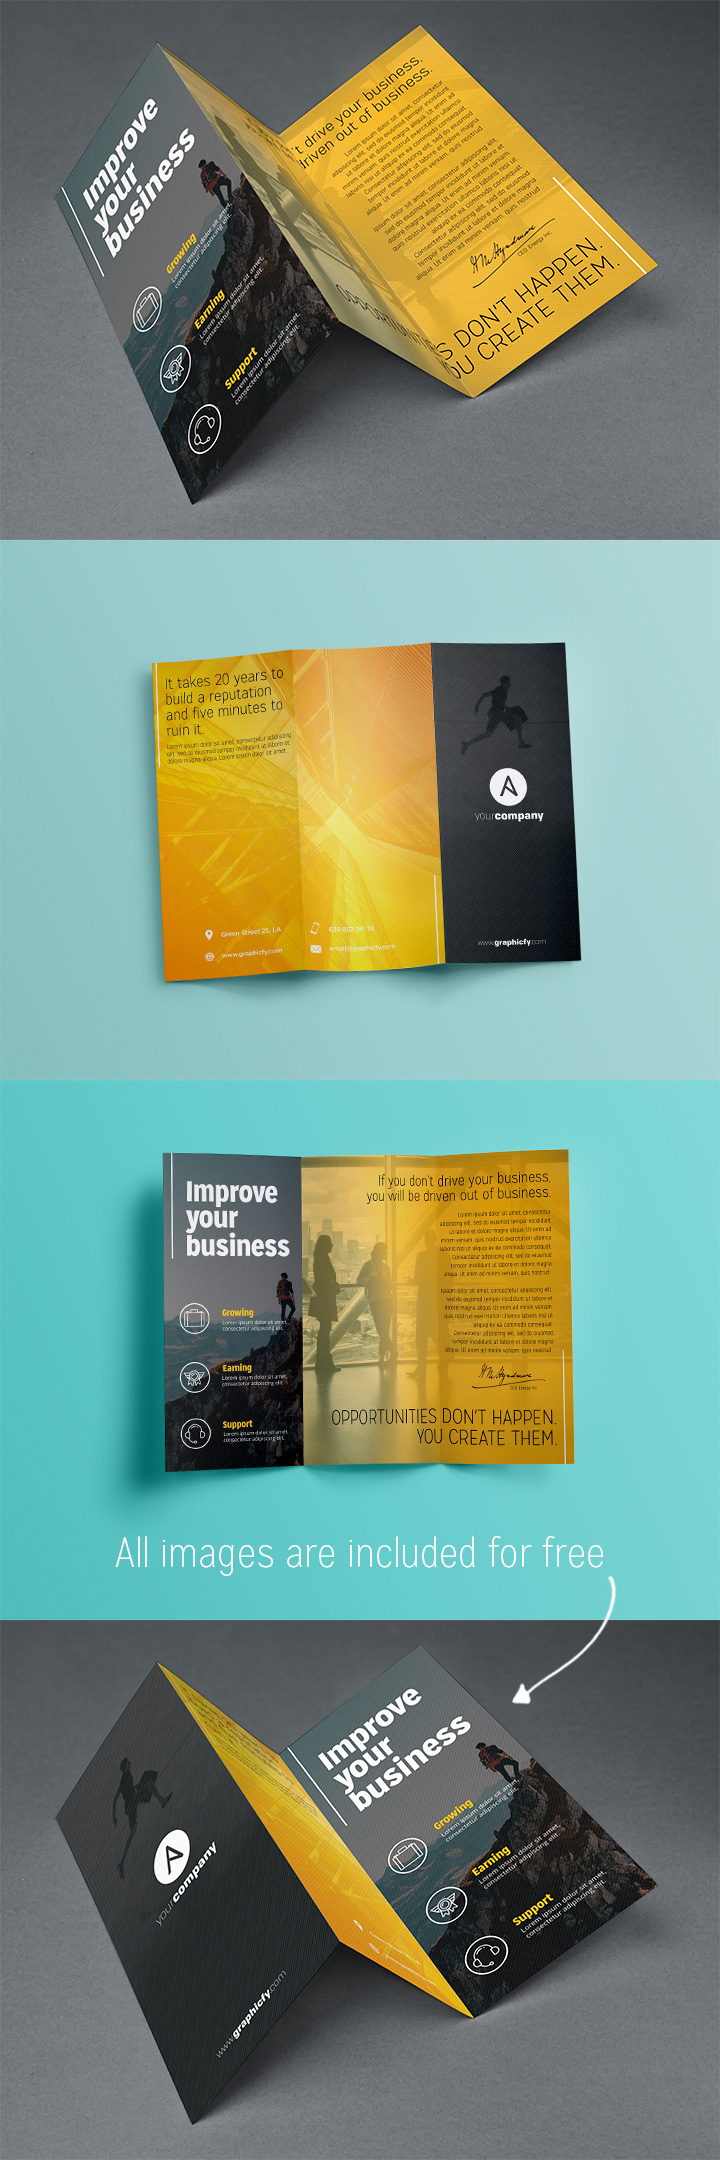 Tri fold brochure template psd brochure templates for Tri fold brochure design templates